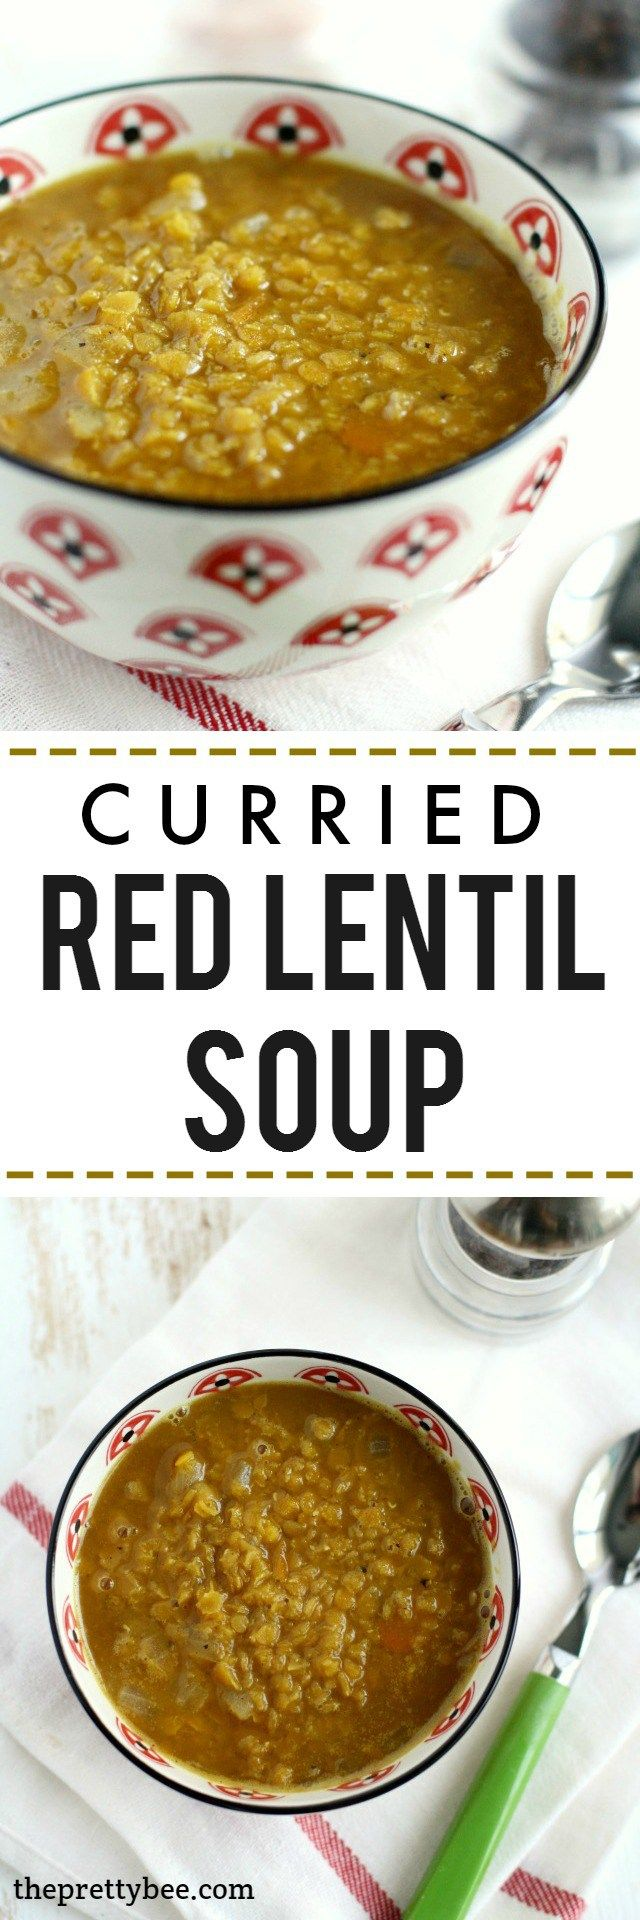 ... Curried Lentil Soup on Pinterest | Lentil Soup, Lentils and Soups